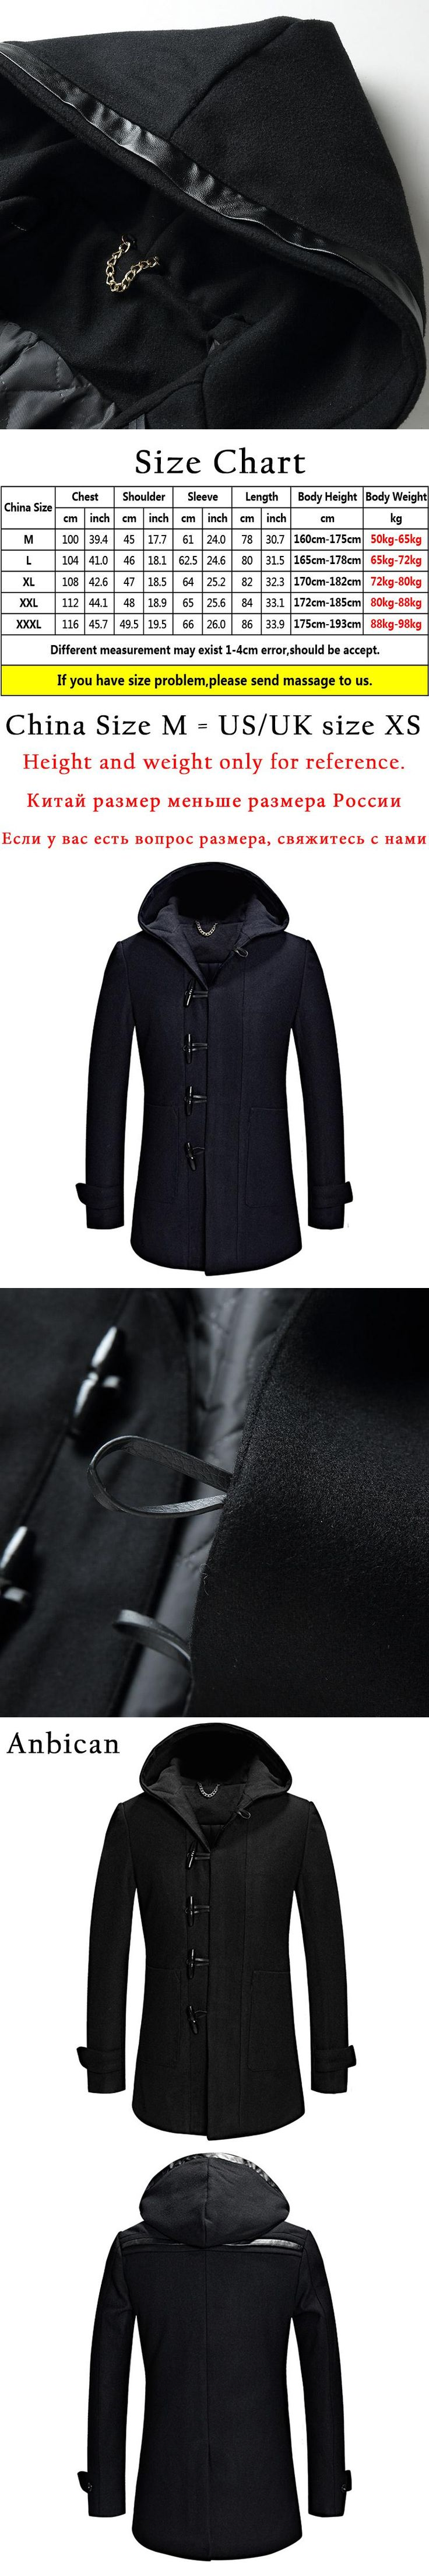 Anbican Fashion Black and Blue Hooded Wool Coat Men 2017 Brand New Single Breasted Mens Winter Long Trench Coat Plus Size M-XXXL